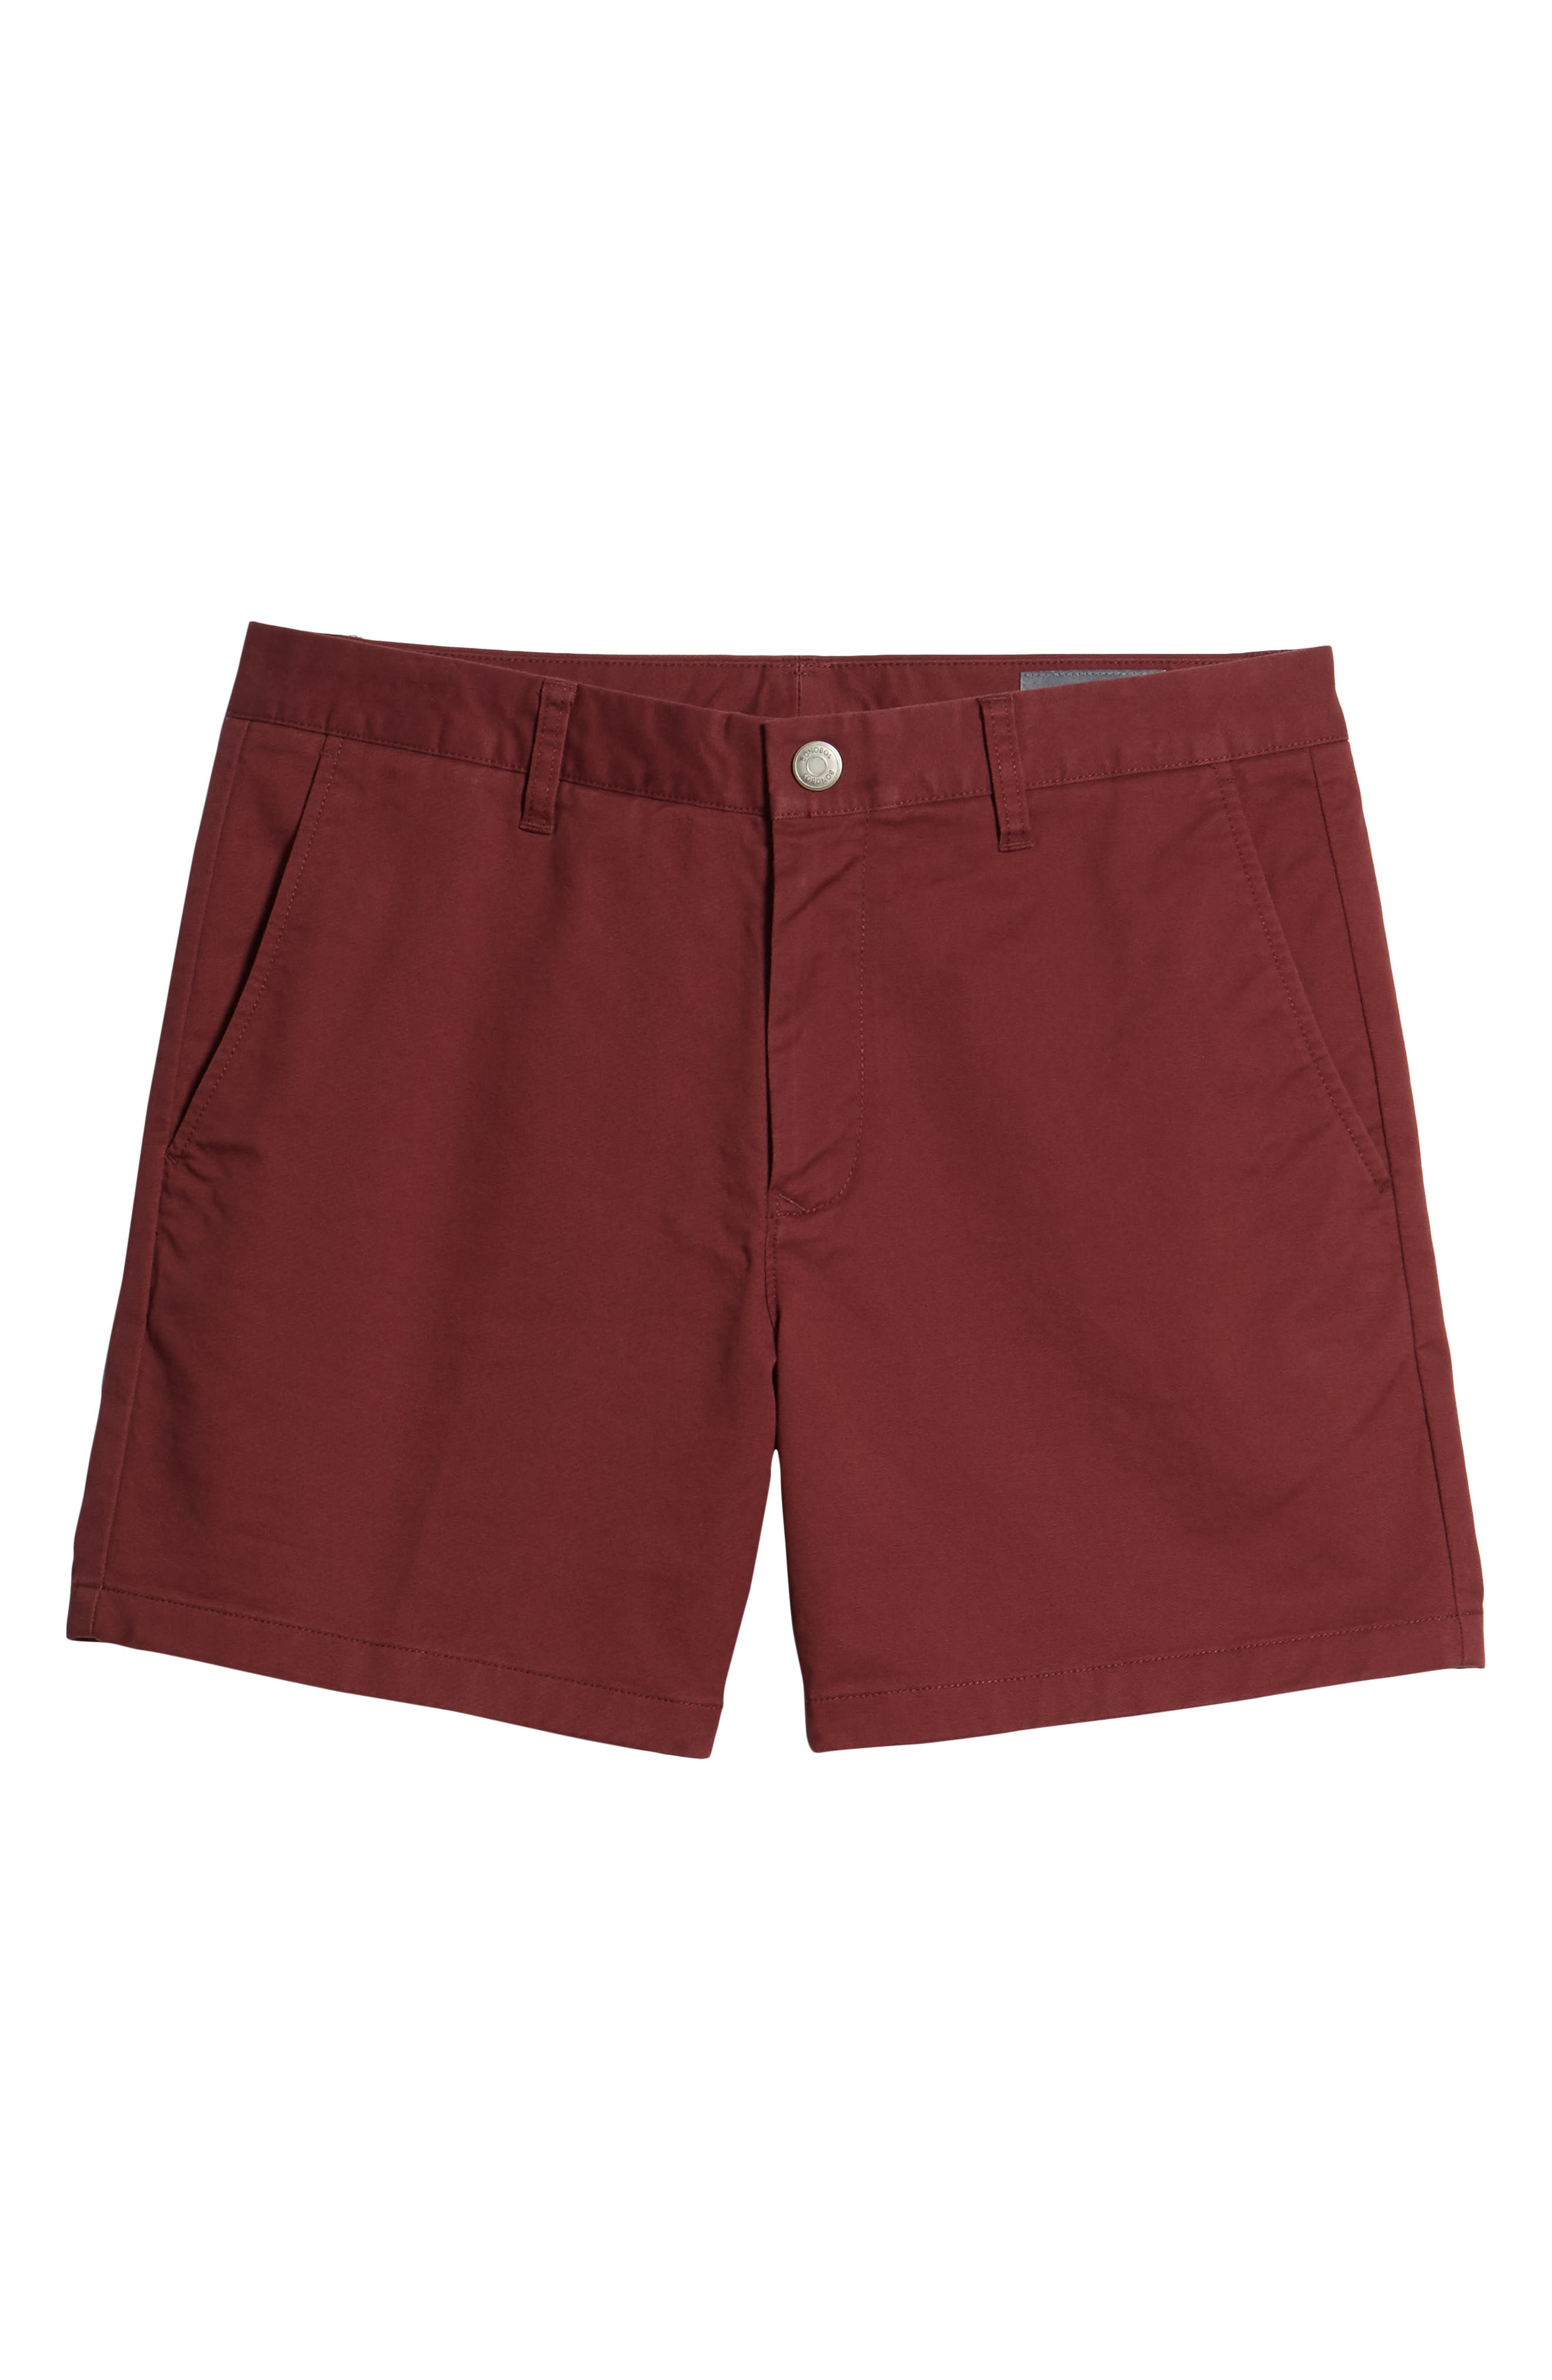 Stretch Washed Chino 5-Inch Shorts,                             Alternate thumbnail 156, color,